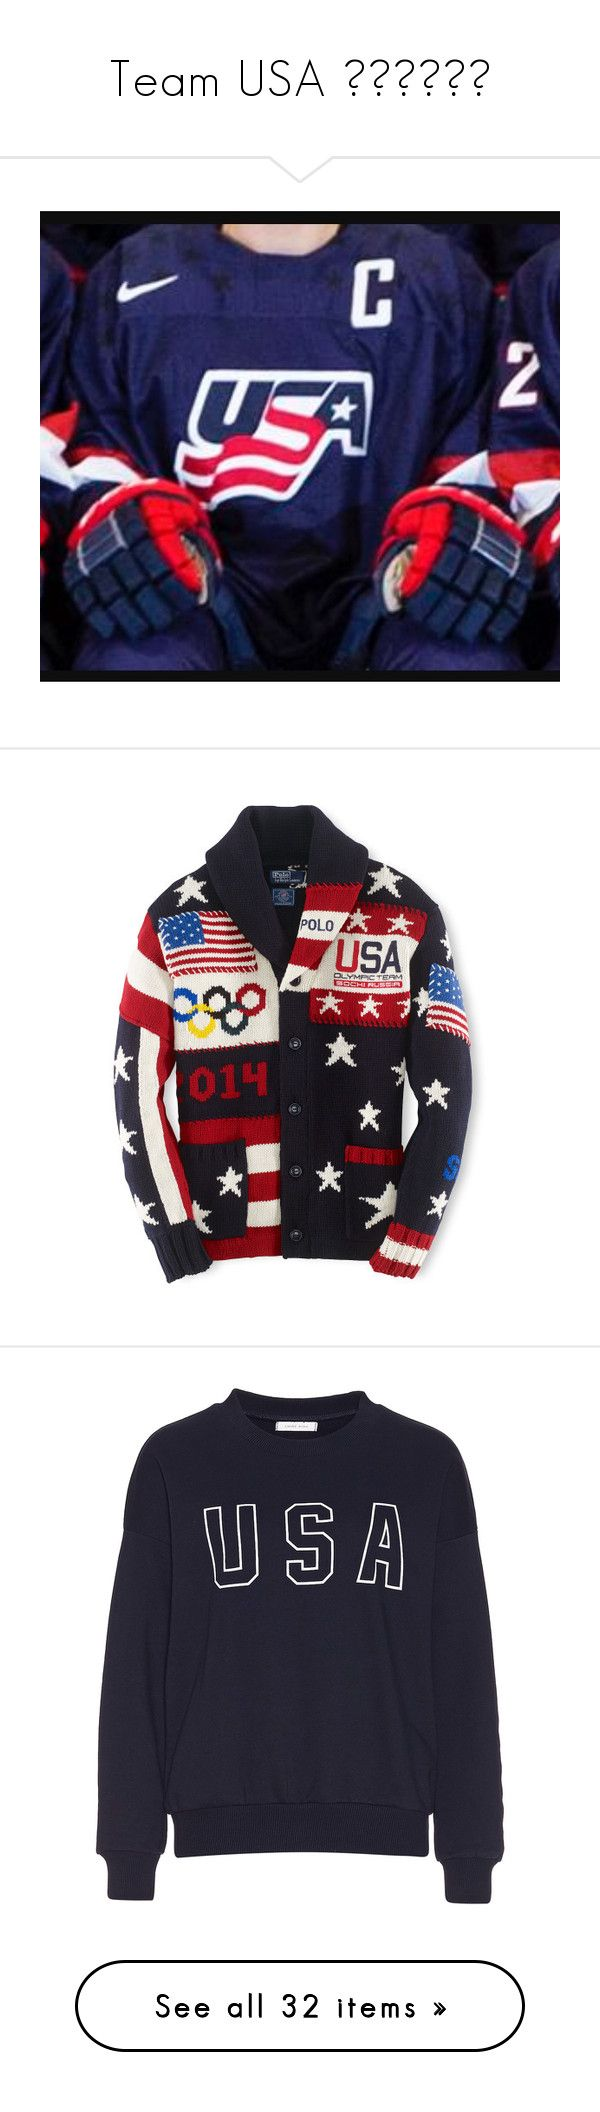 """""""Team USA 🇺🇸🇺🇸🇺🇸"""" by jbiebzgurl ❤ liked on Polyvore featuring jewelry, navy jewelry, navy blue jewelry, men's fashion, men's clothing, men's activewear, men's activewear jackets, obsidian, mens activewear and hats"""